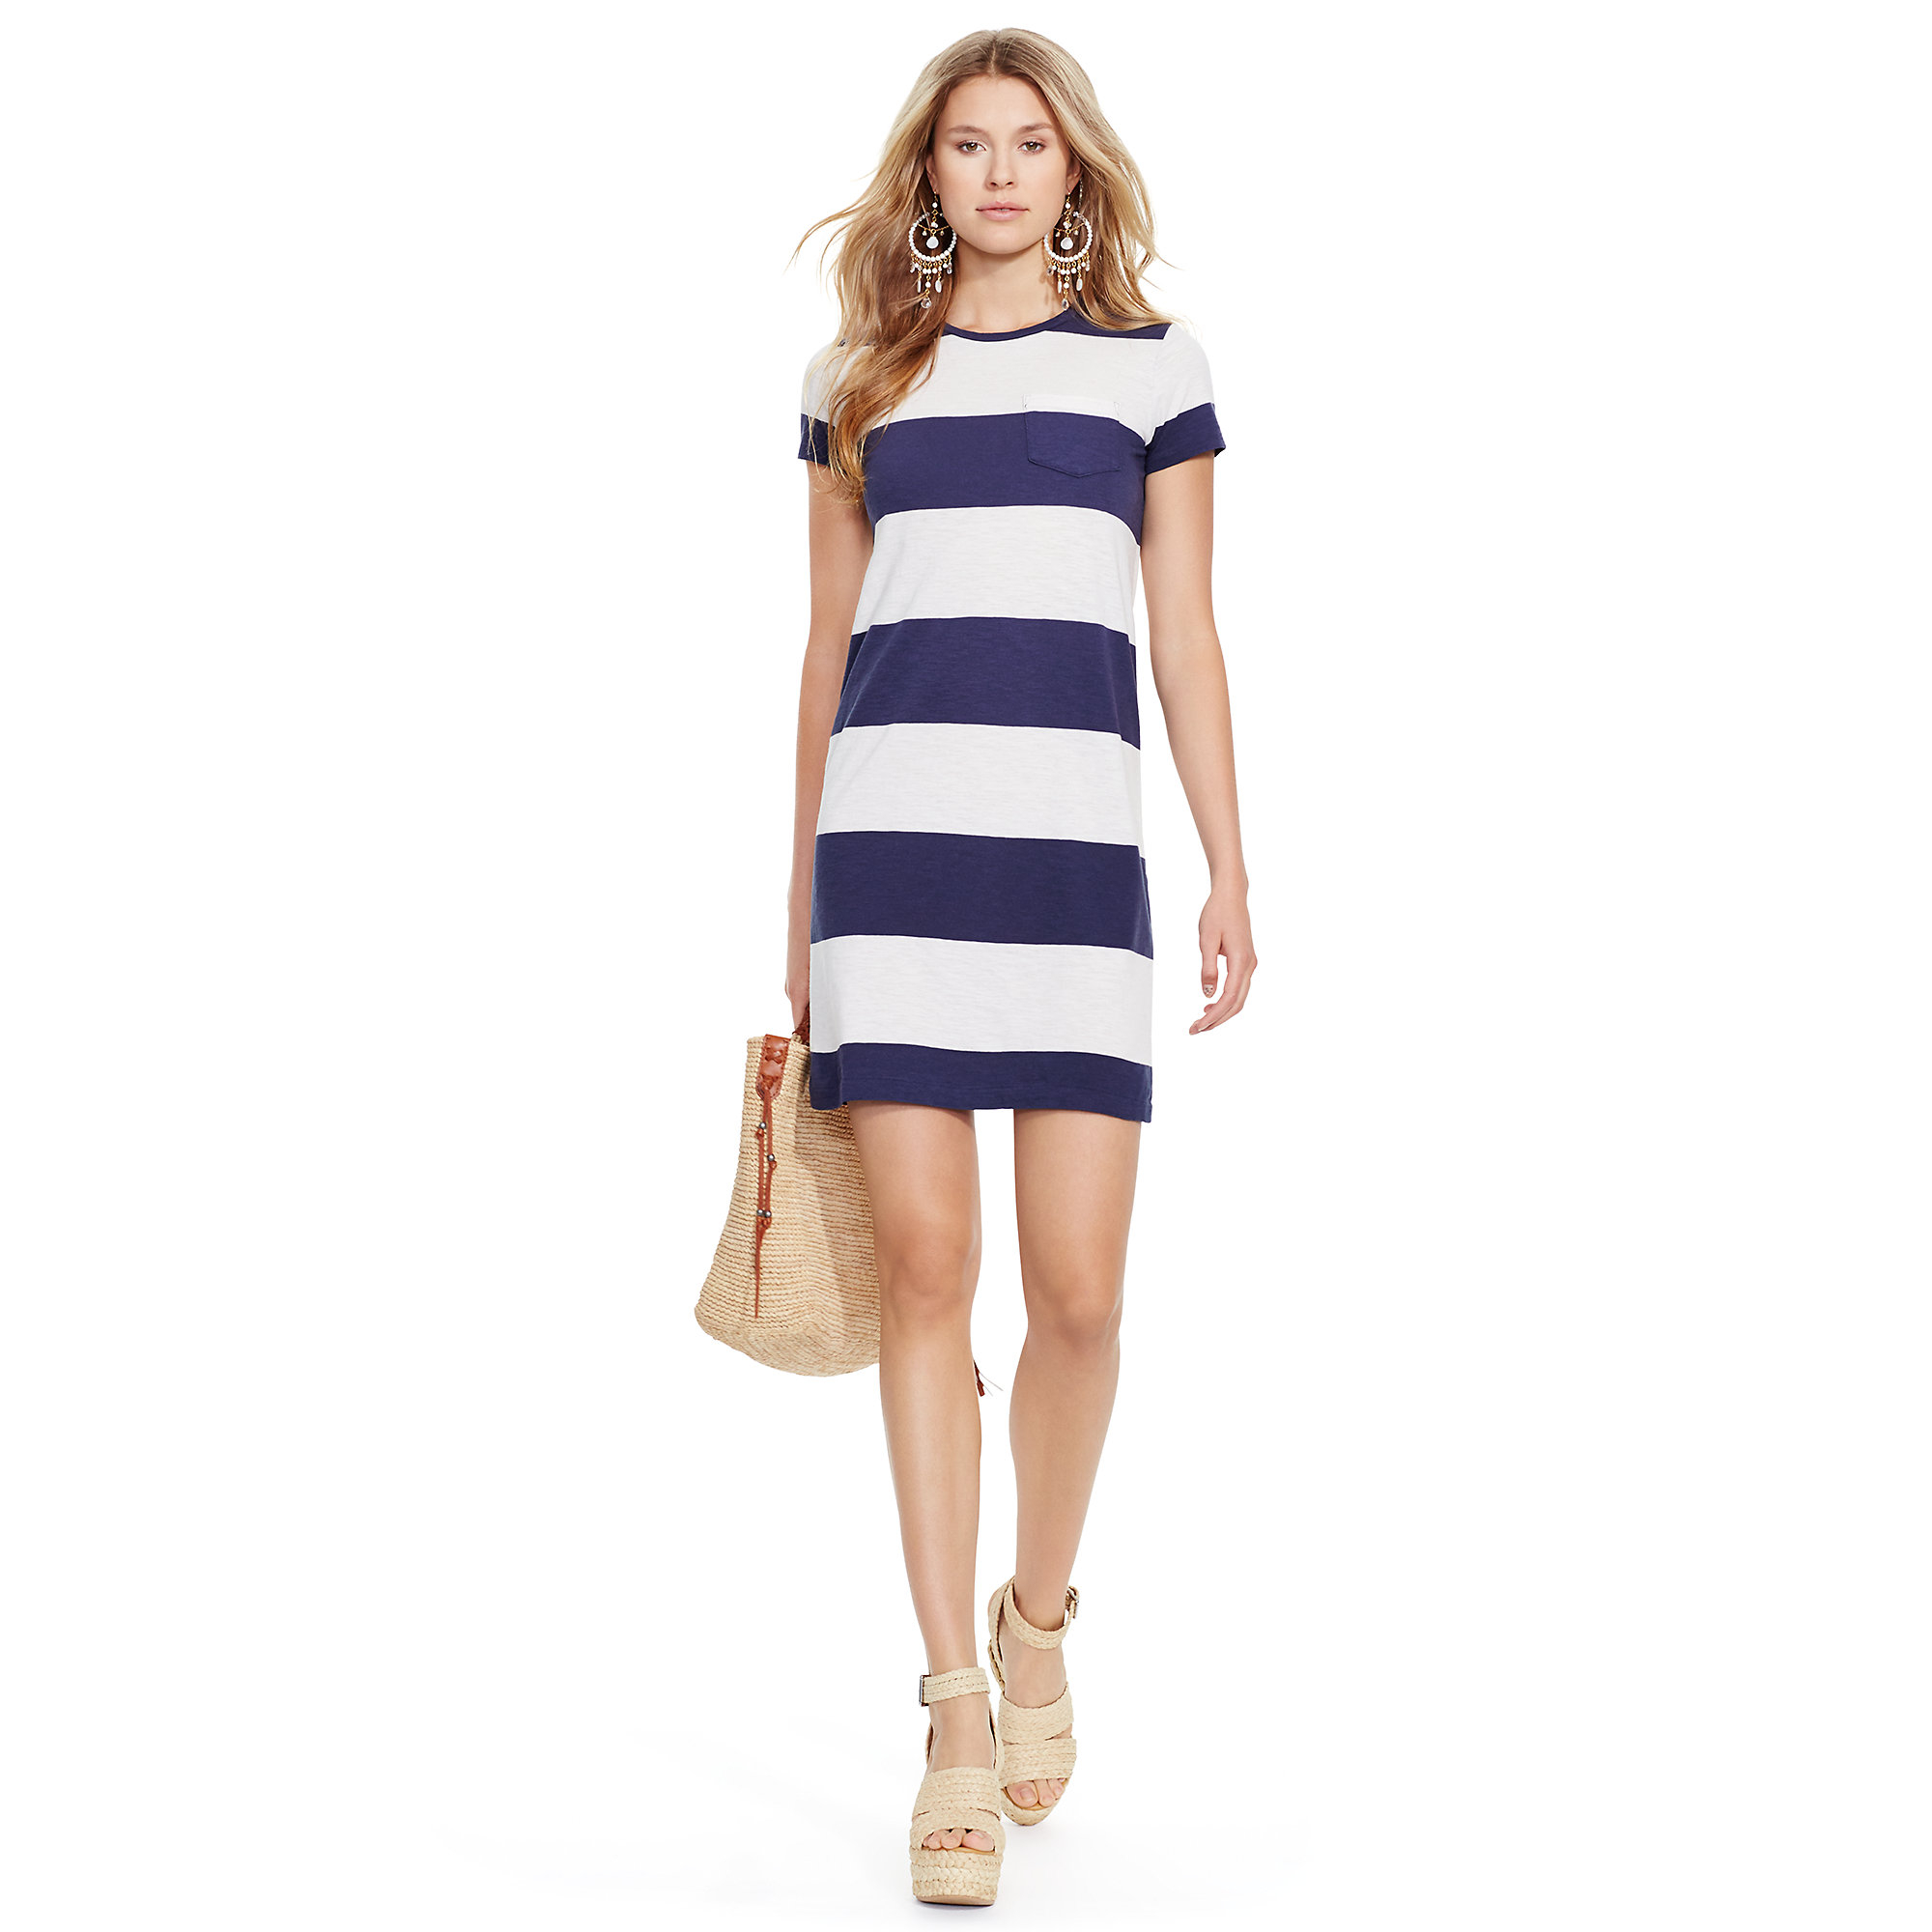 Lyst - Polo Ralph Lauren Striped Cotton Tee Dress in Blue